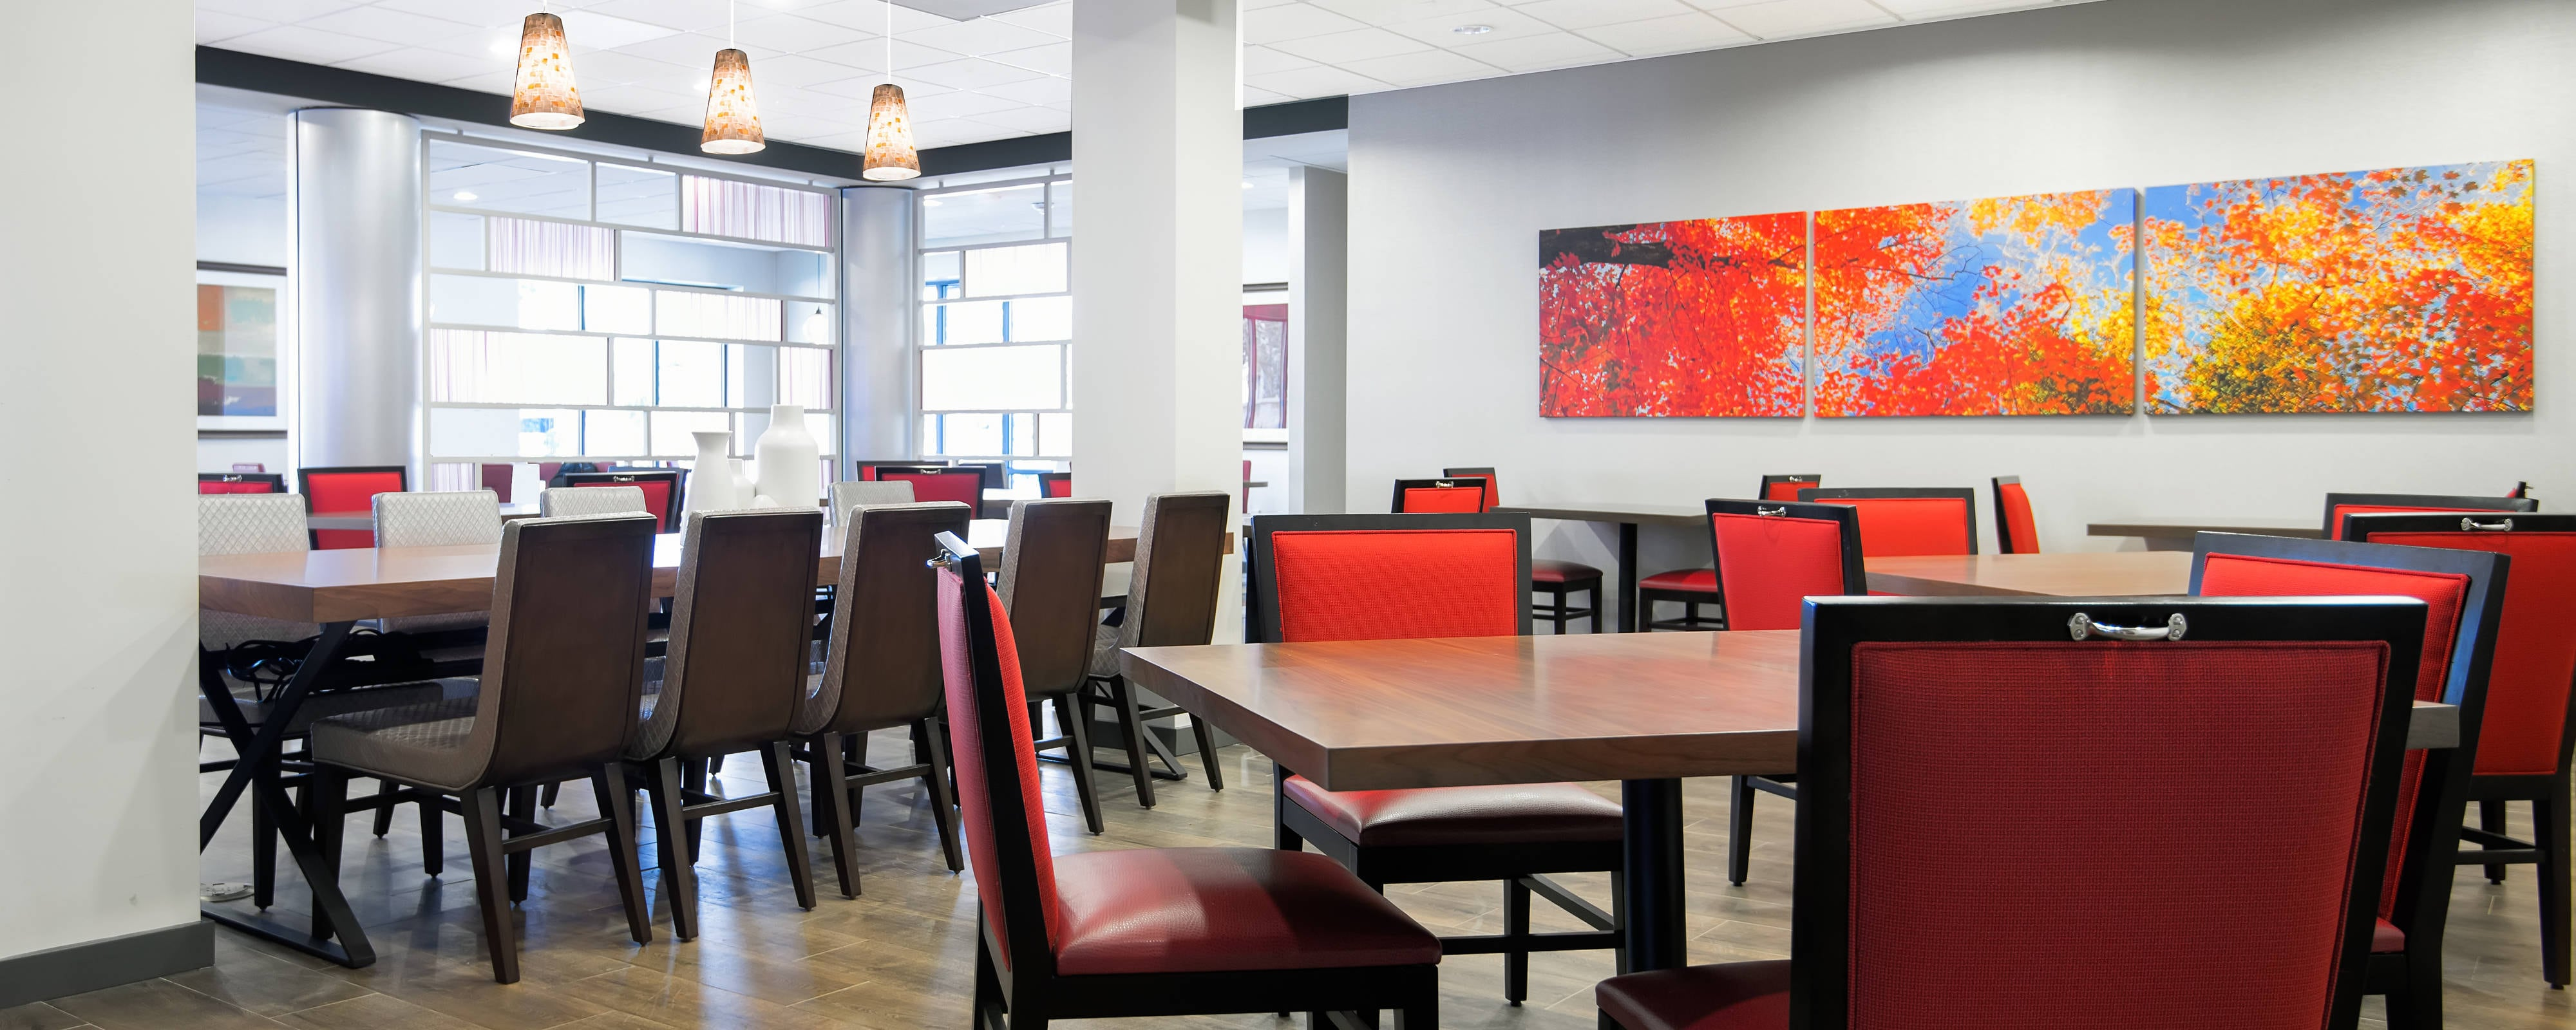 Outstanding Q Tavern Charlotte Uptown At Fairfield Inn And Suites Interior Design Ideas Helimdqseriescom